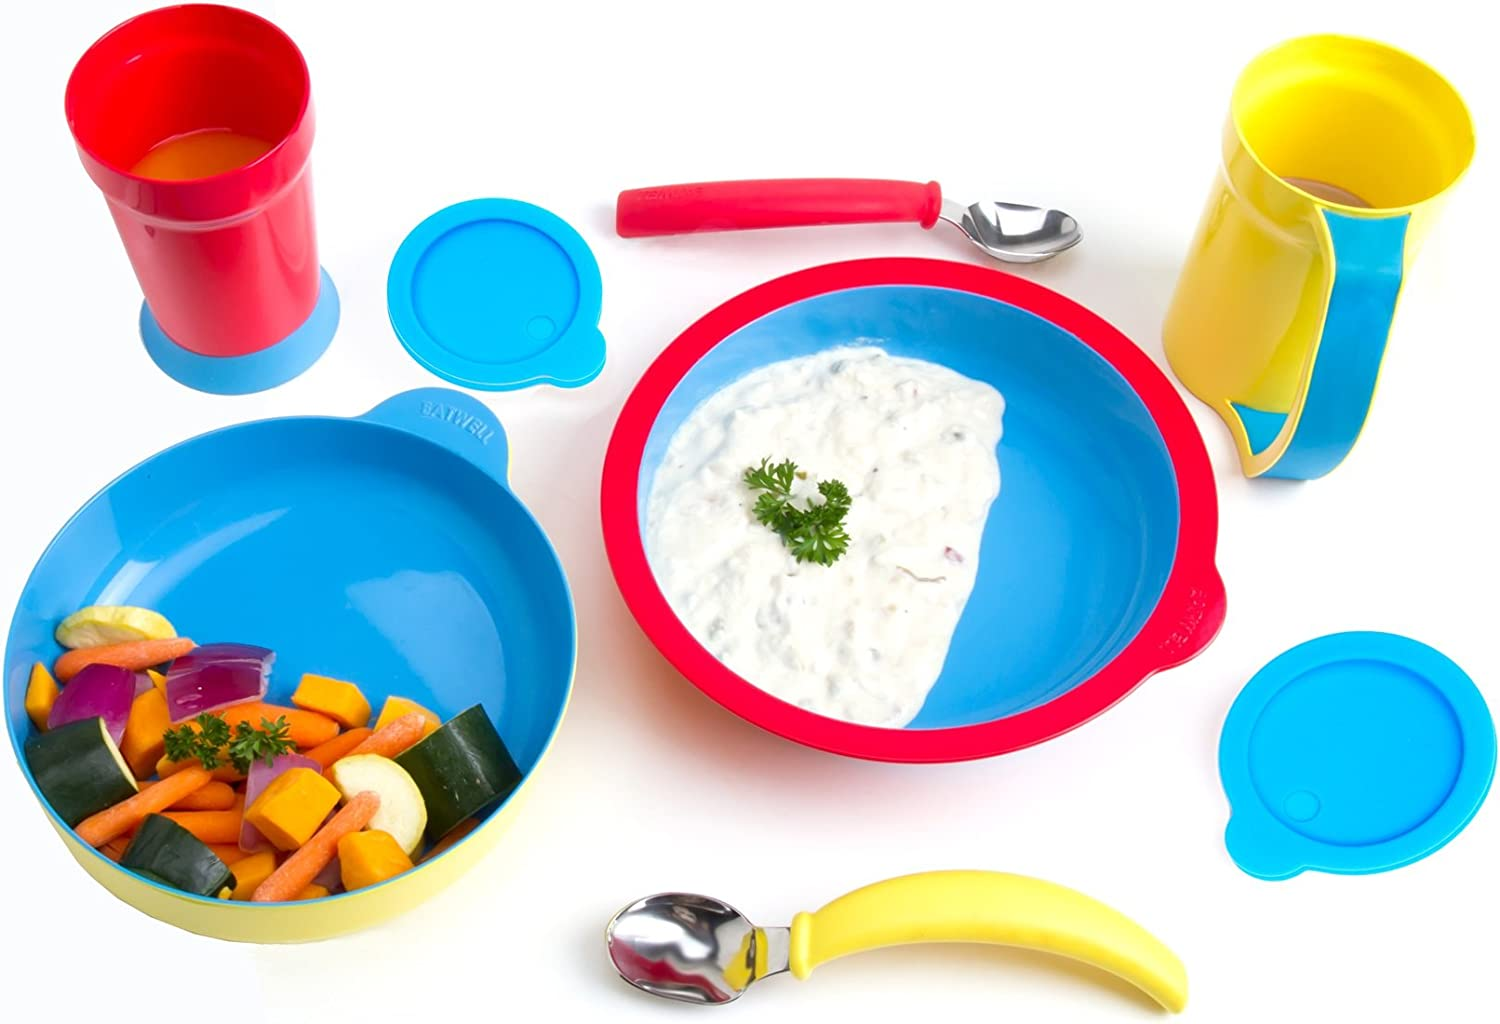 Sha Design Eatwell Assistive Tableware